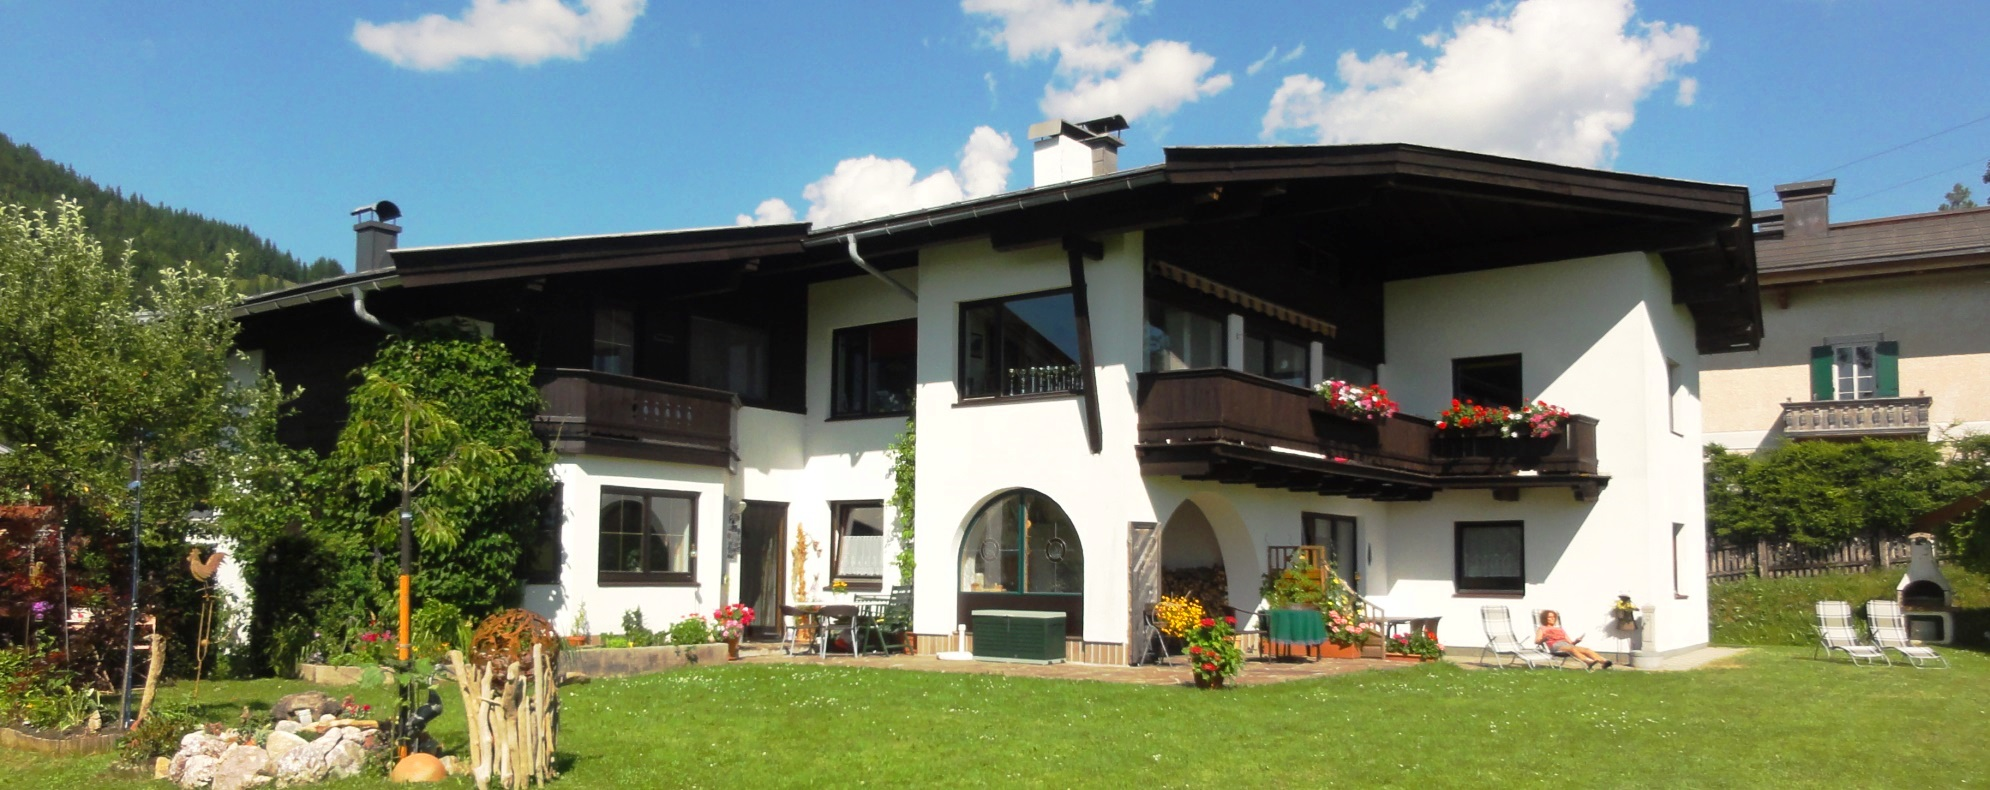 Welcome to the holiday apartments Walk, apartments Walk, holiday apartments Sophia in Hochfilzen/PillerseeTal